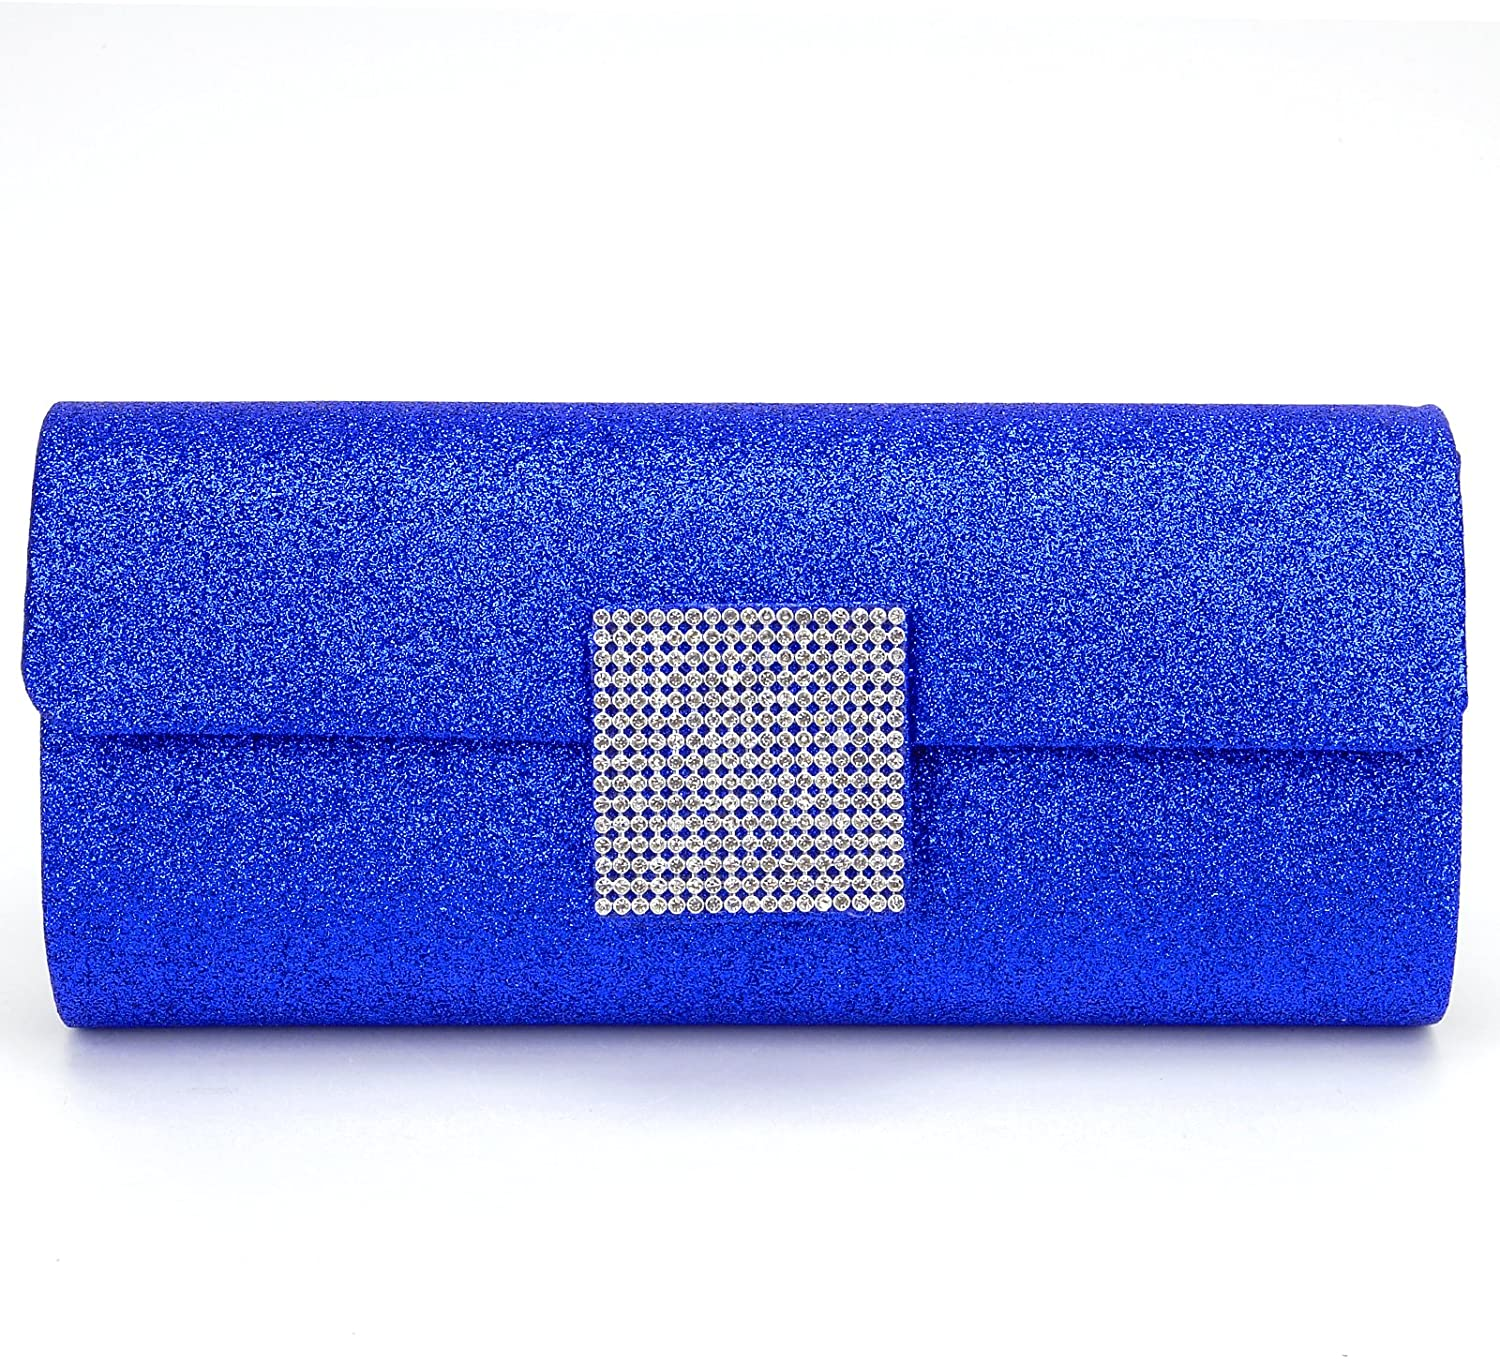 Dazzling Glitter Bling Shiny Evening Party Clutch Bag Purse 3 Colours